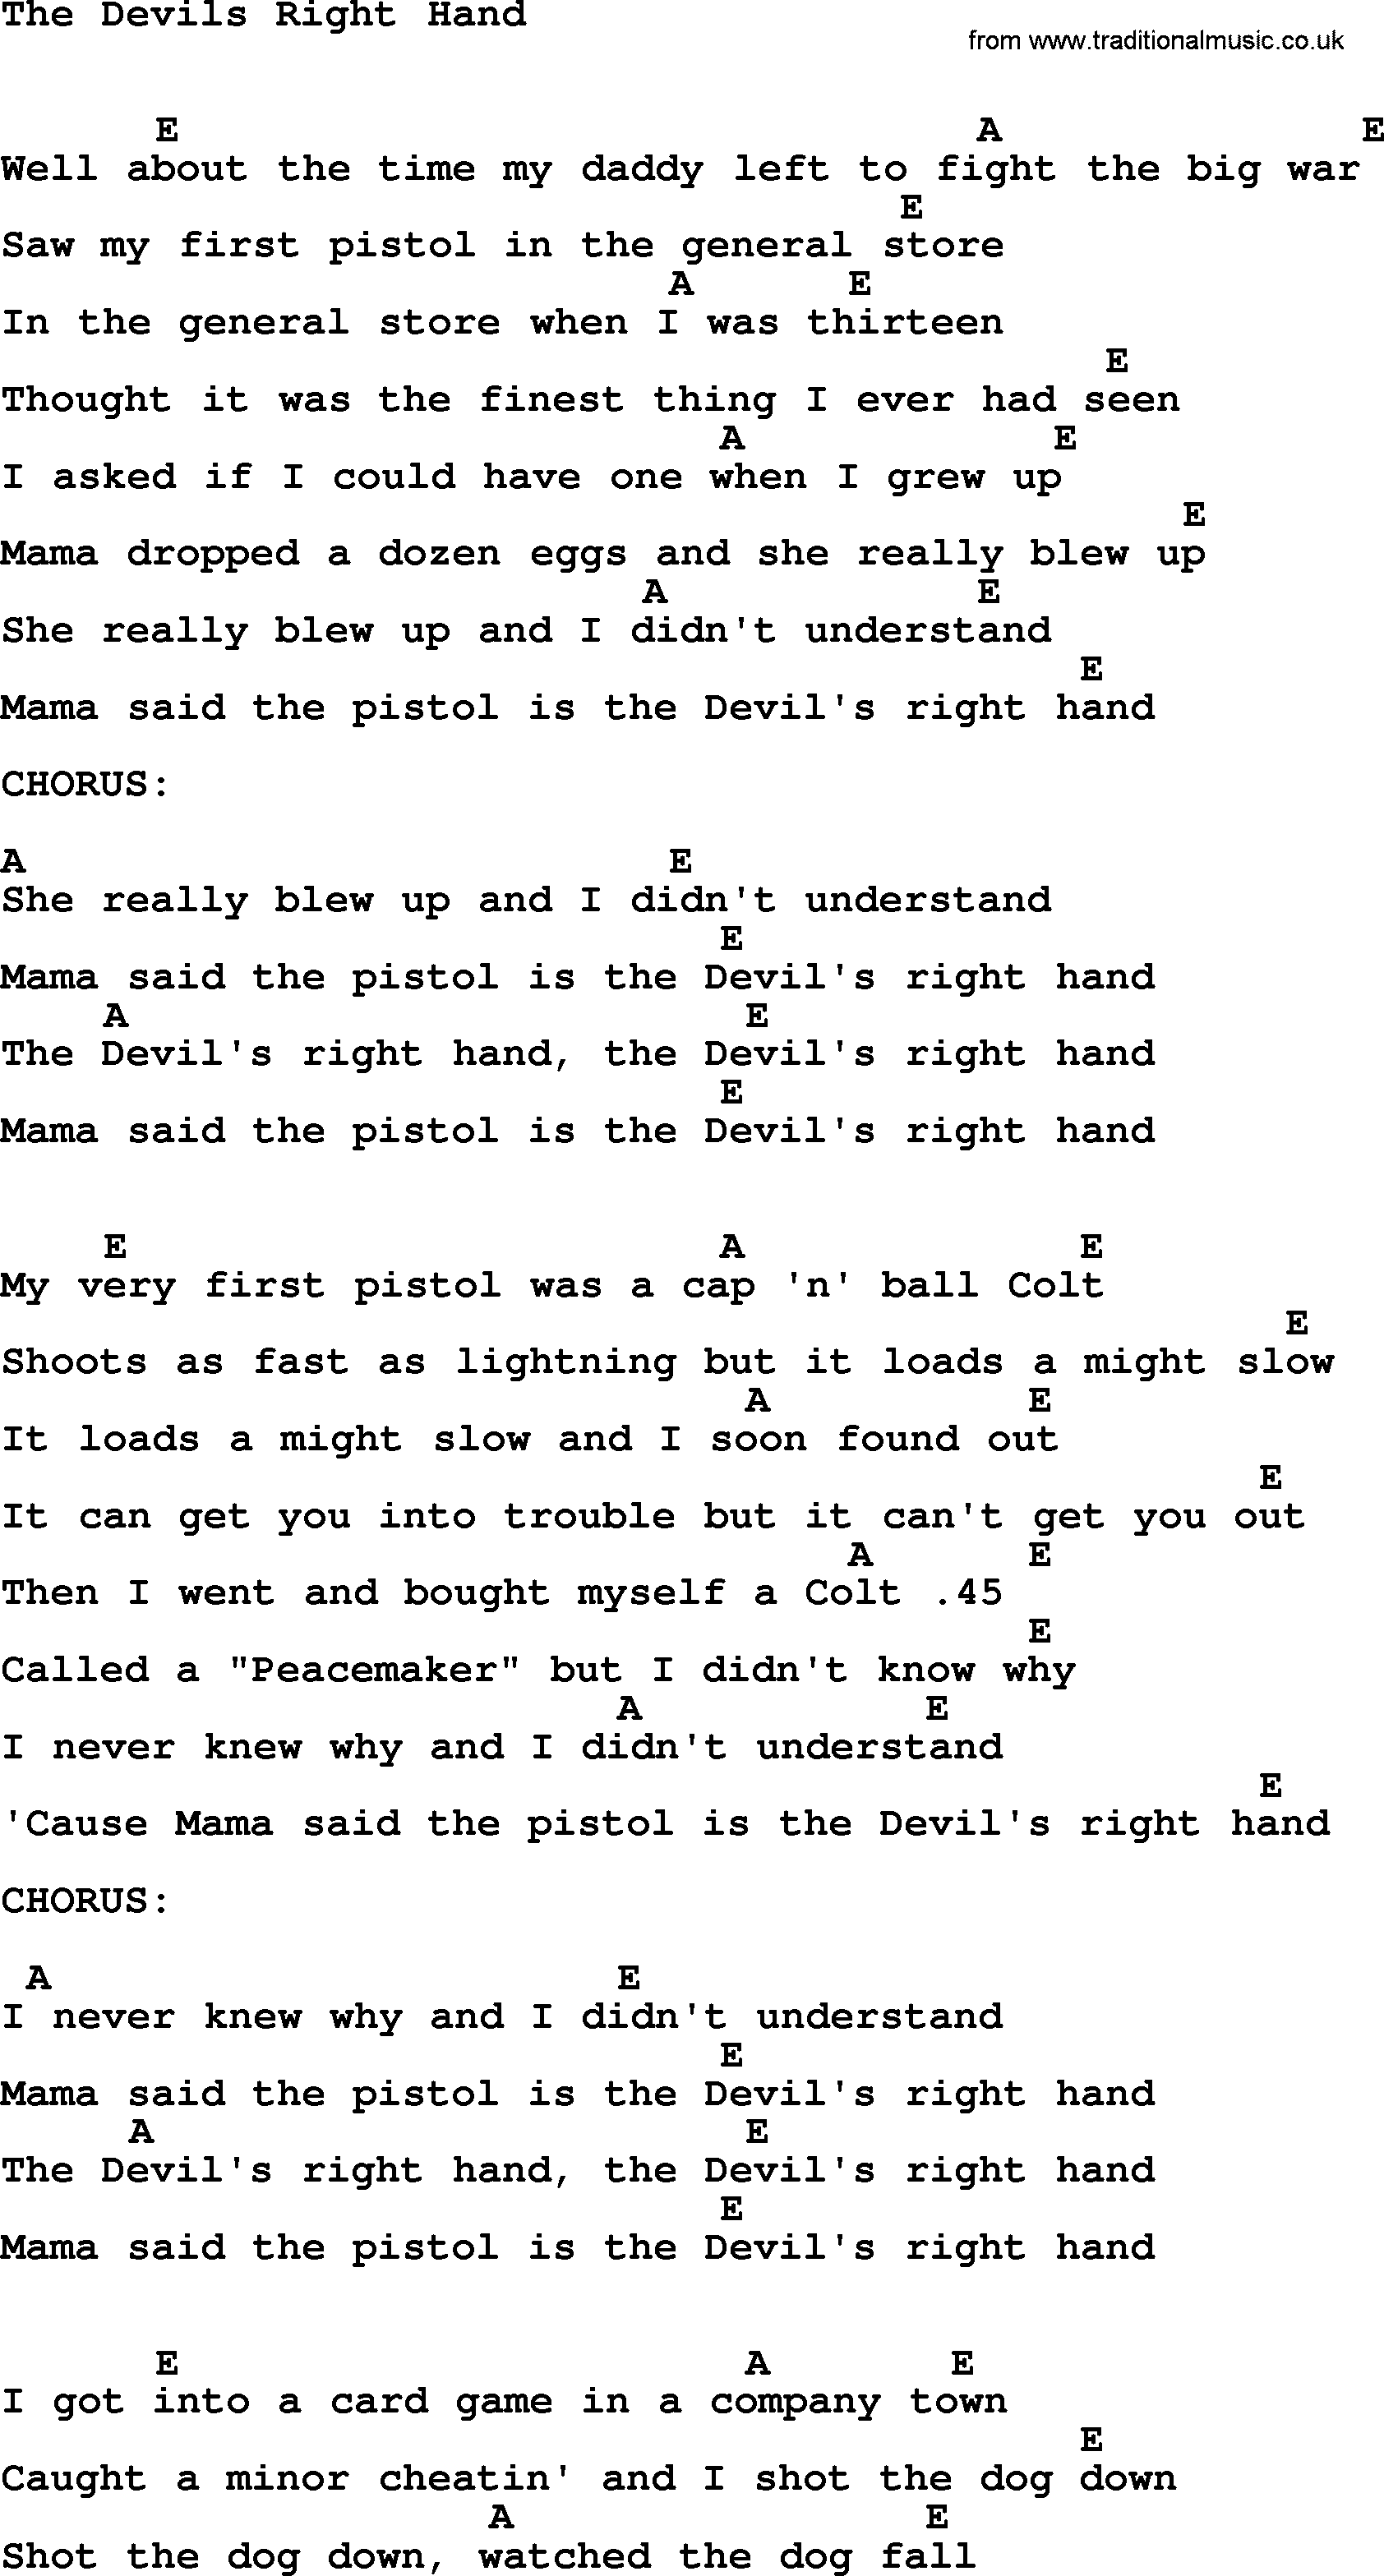 Johnny Cash song The Devils Right Hand, lyrics and chords